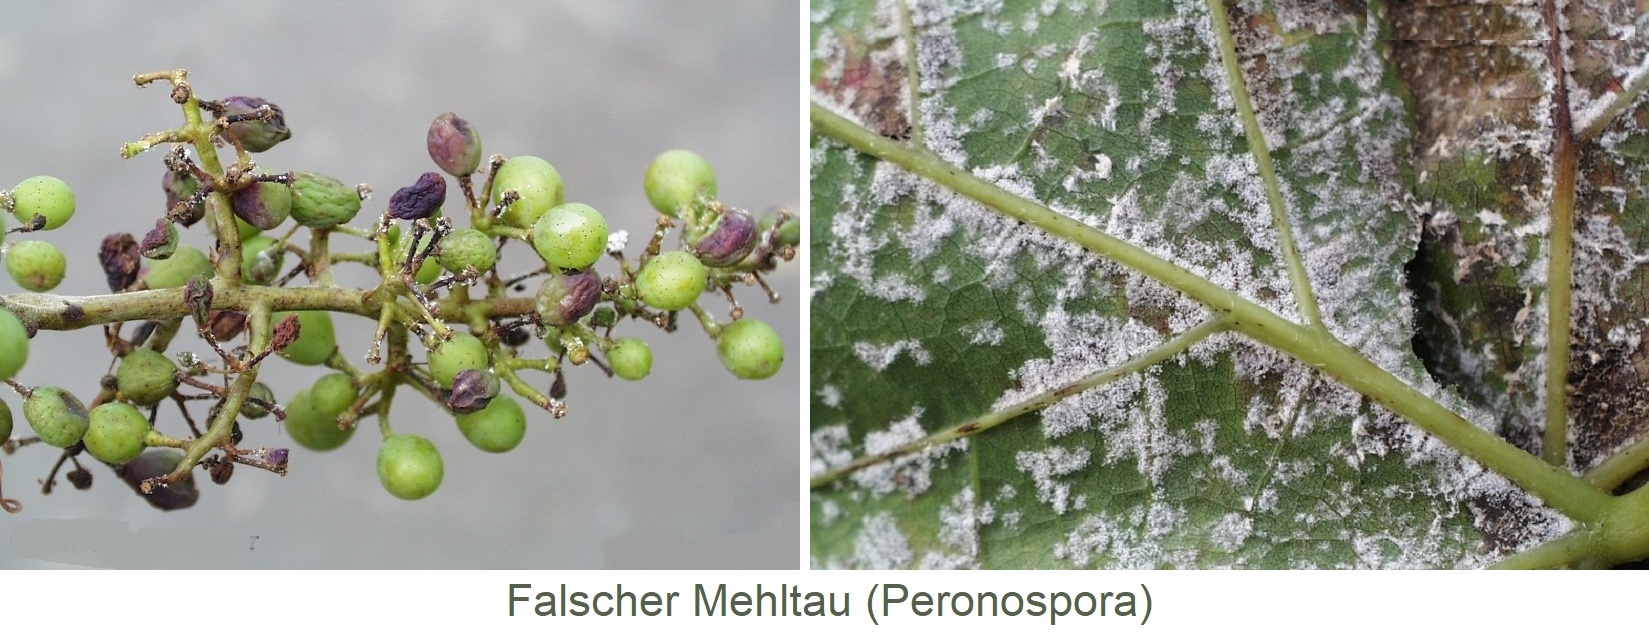 Downy mildew (Peronospora) - symptoms on grape and leaf